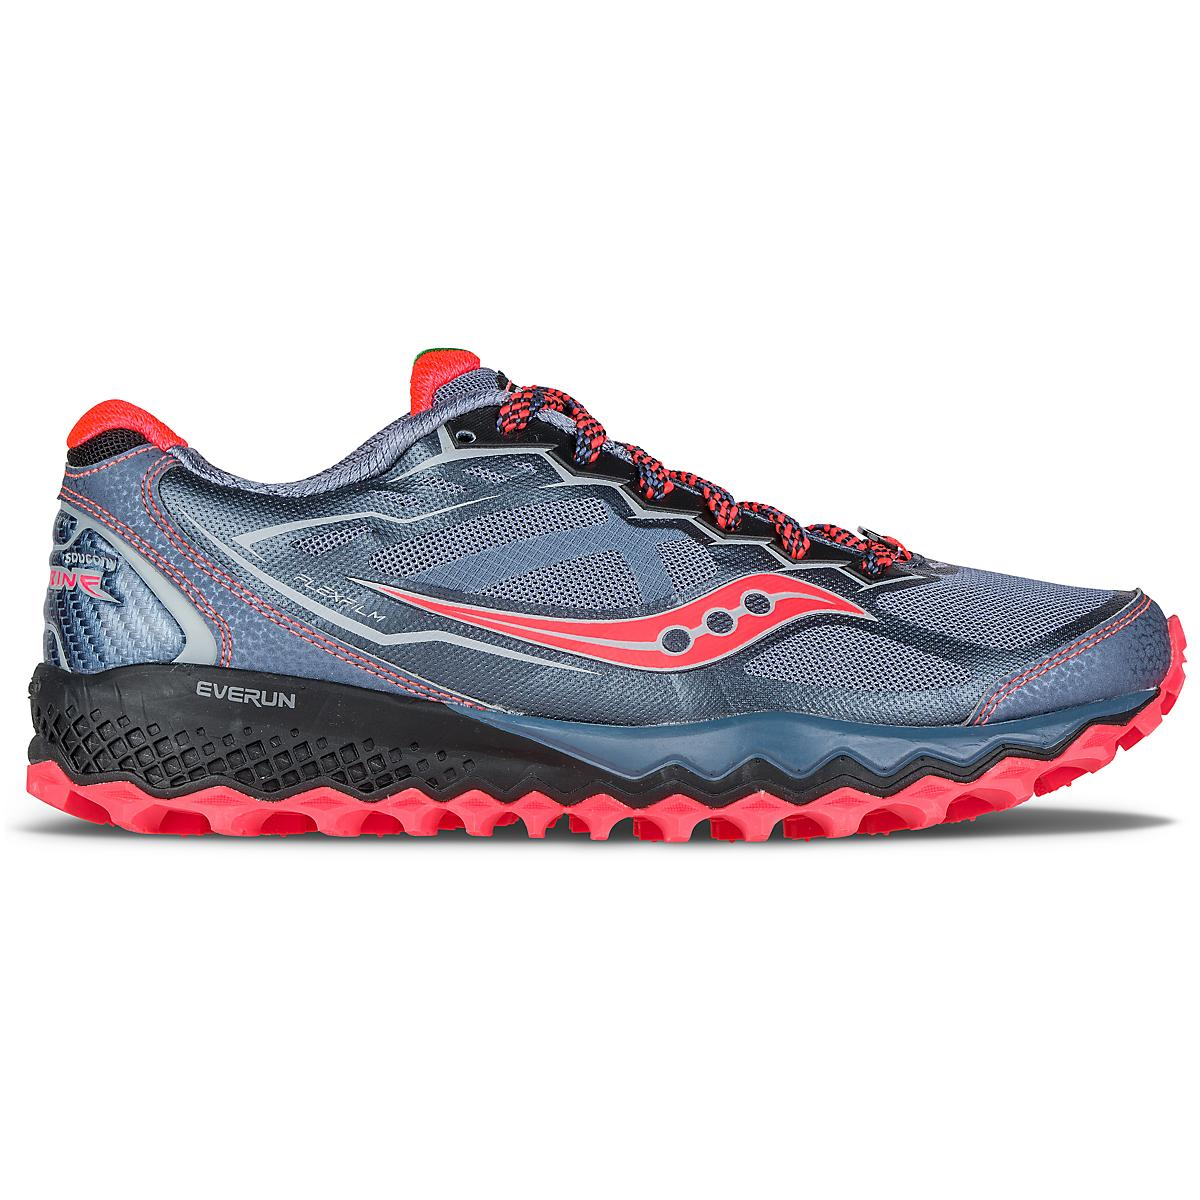 c81d6ee14e7b Womens Saucony Peregrine 6 Trail Running Shoe at Road Runner Sports